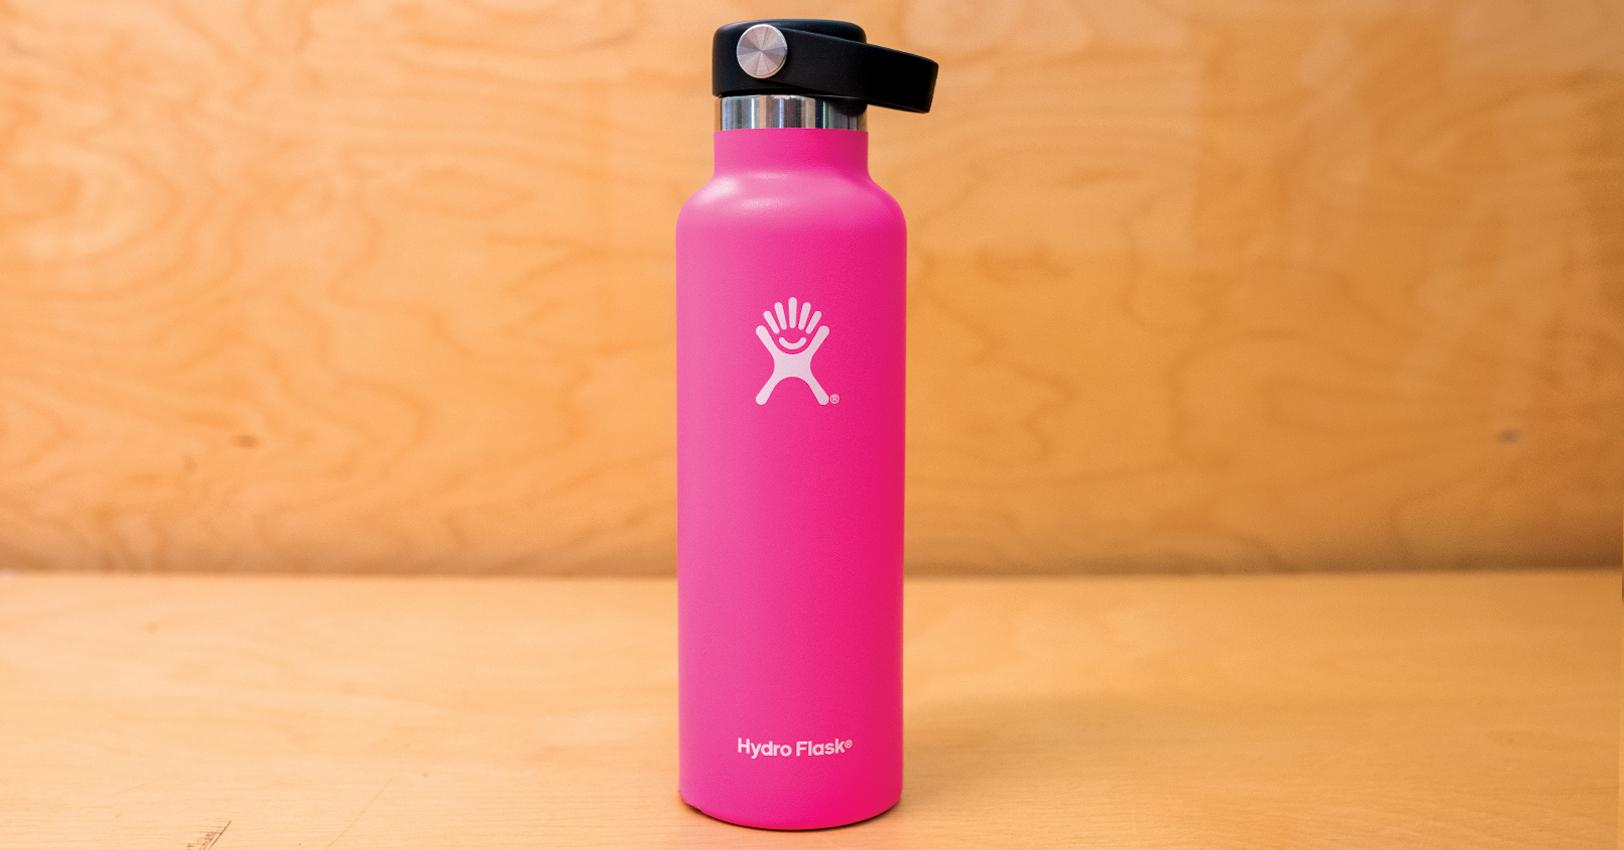 GM-Home-Bottles-HydroFlask-1526575905917.jpg